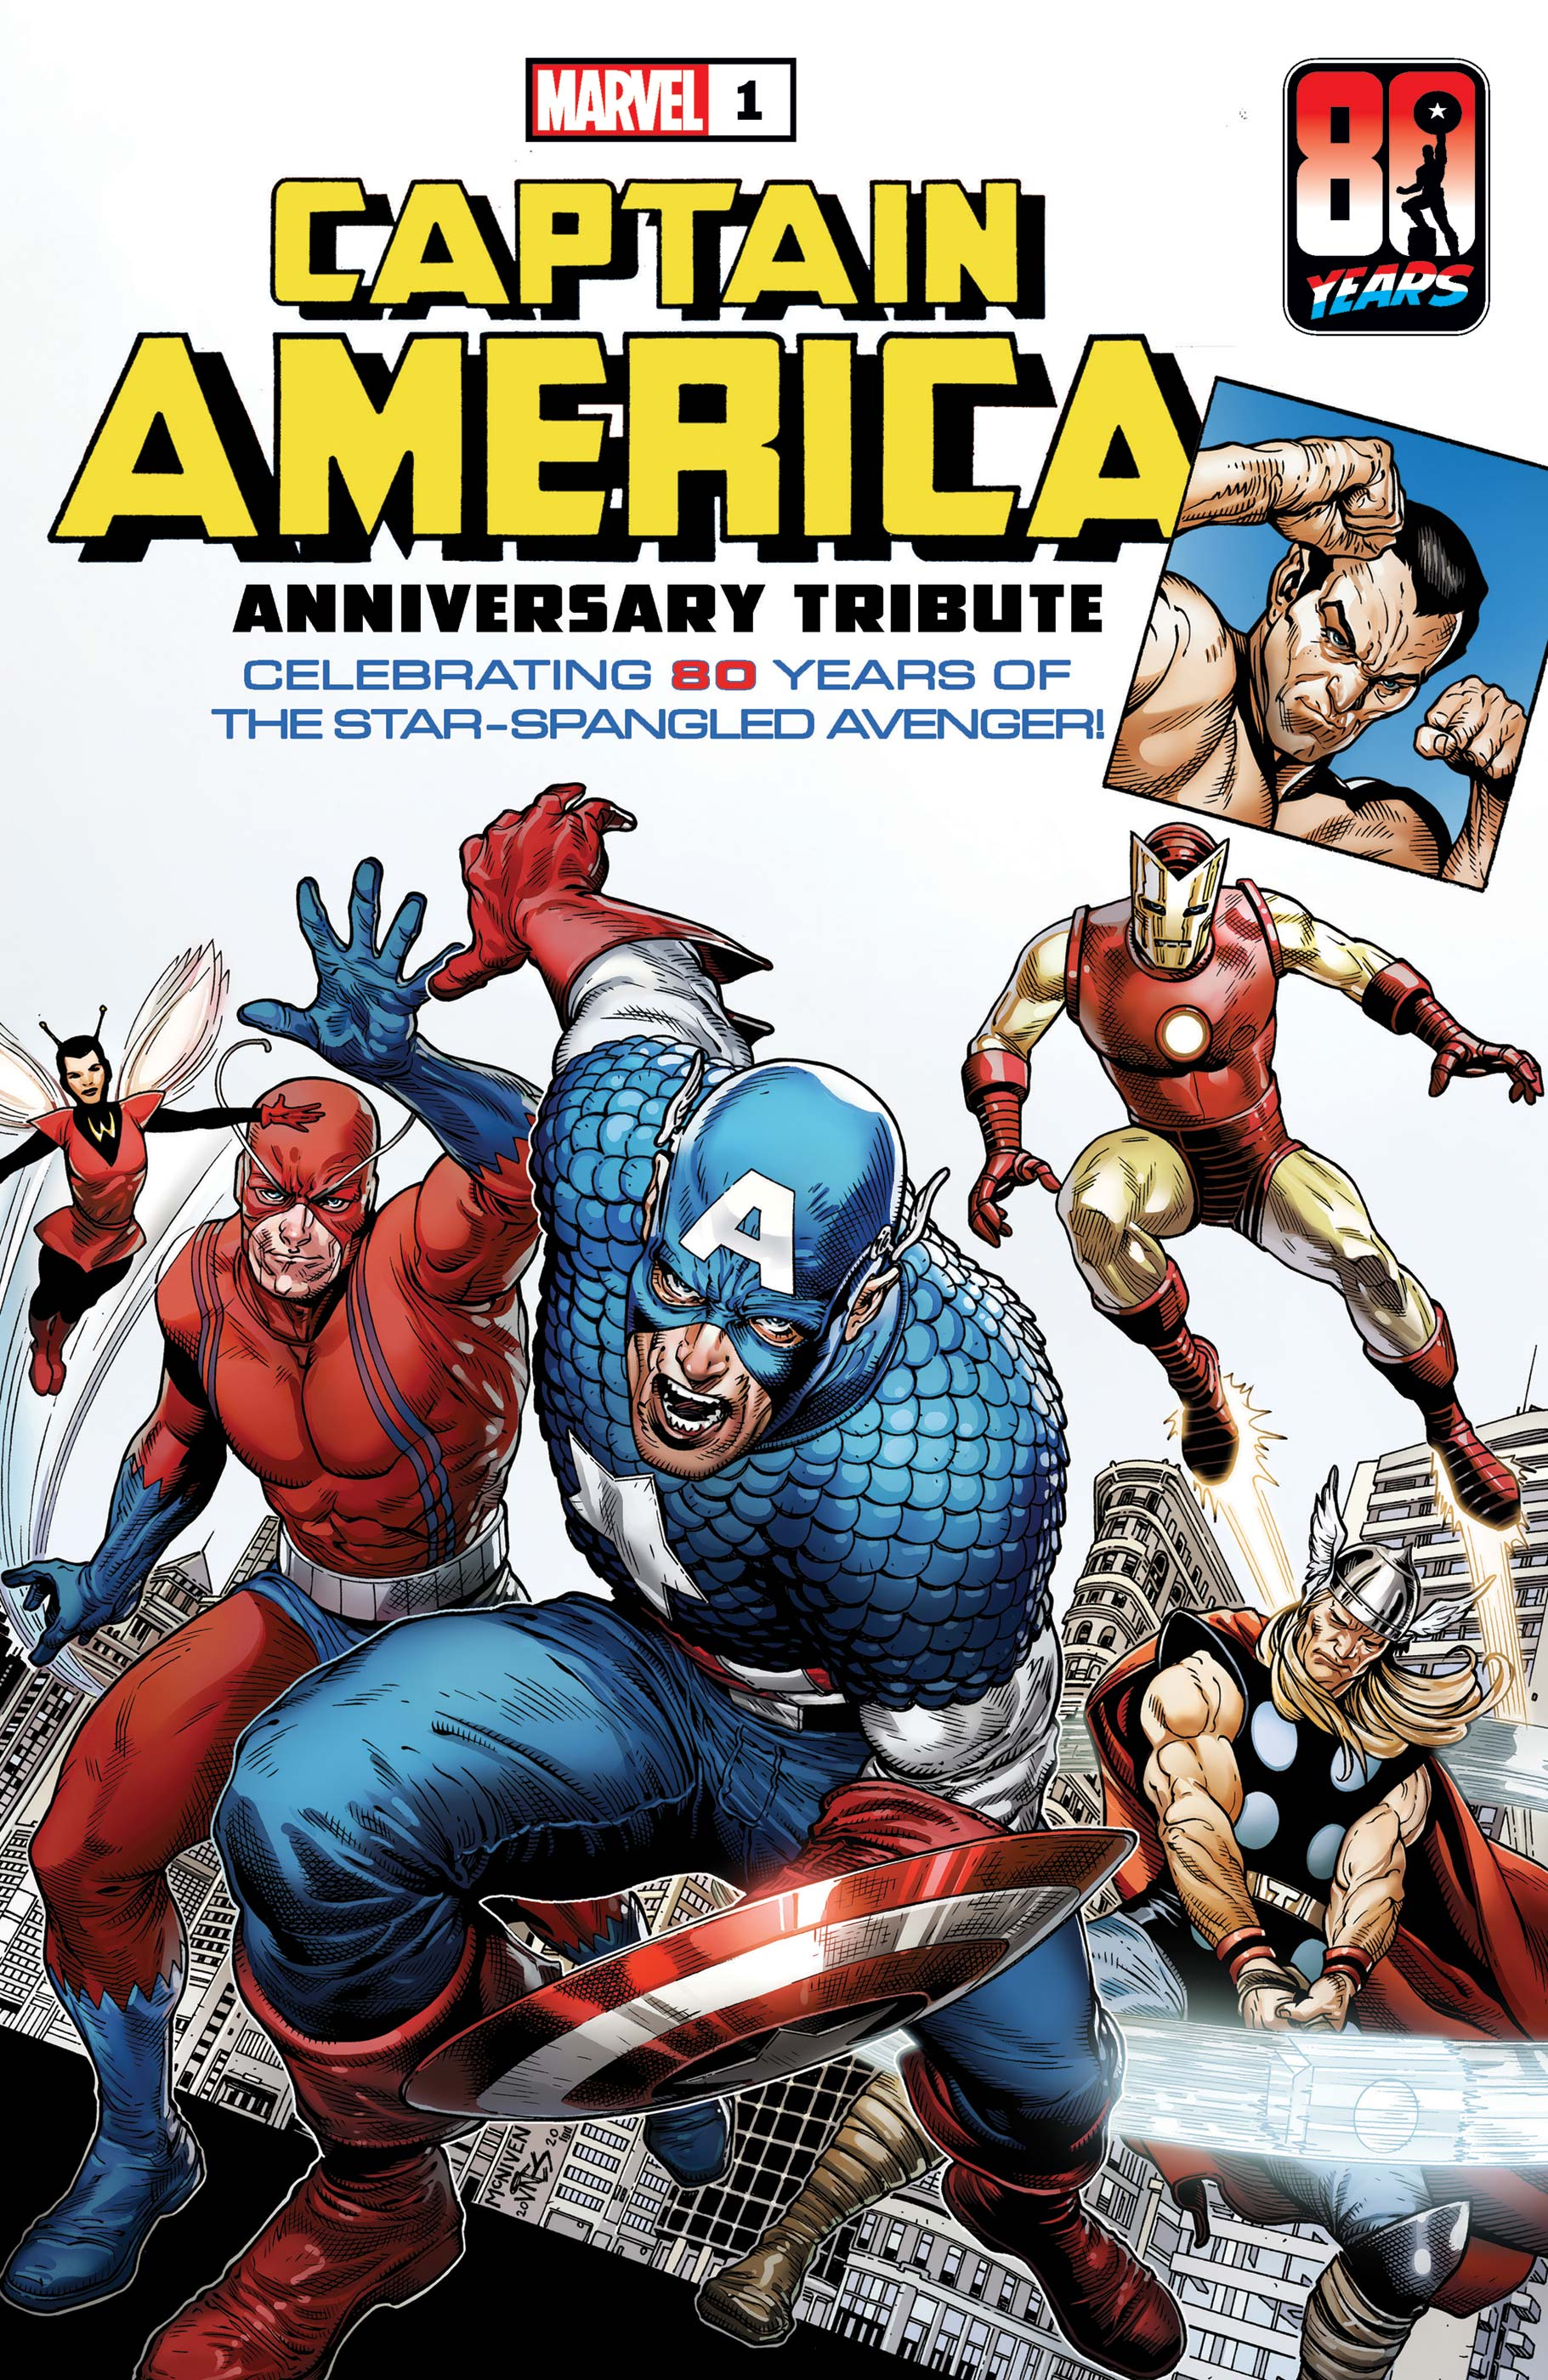 CAPTAIN AMERICA ANNIVERSARY TRIBUTE 1 (2021) #1